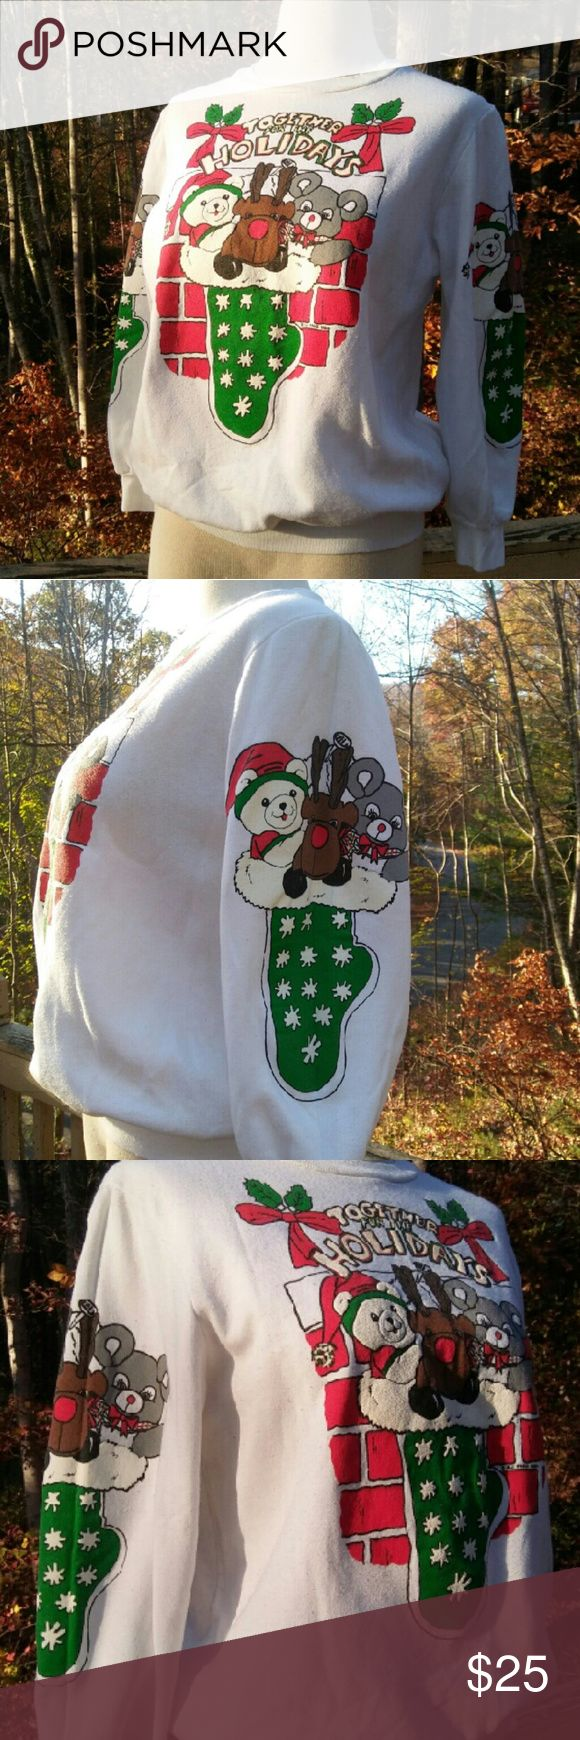 1989 HOLIDAY Sweatshirt Vintage Together for the Holidays Sweatshirt with BJ Frog 1989 Copyright (located in the front logo between the bricks at the stocking heel). Christmas! Ugly sweater? I think it's adorable... In great used condition; the fabric shows a bit of pilling from being washed. No stains! No tags. Women's Medium. From a smoke free home. Make an offer! Vintage Tops Sweatshirts & Hoodies